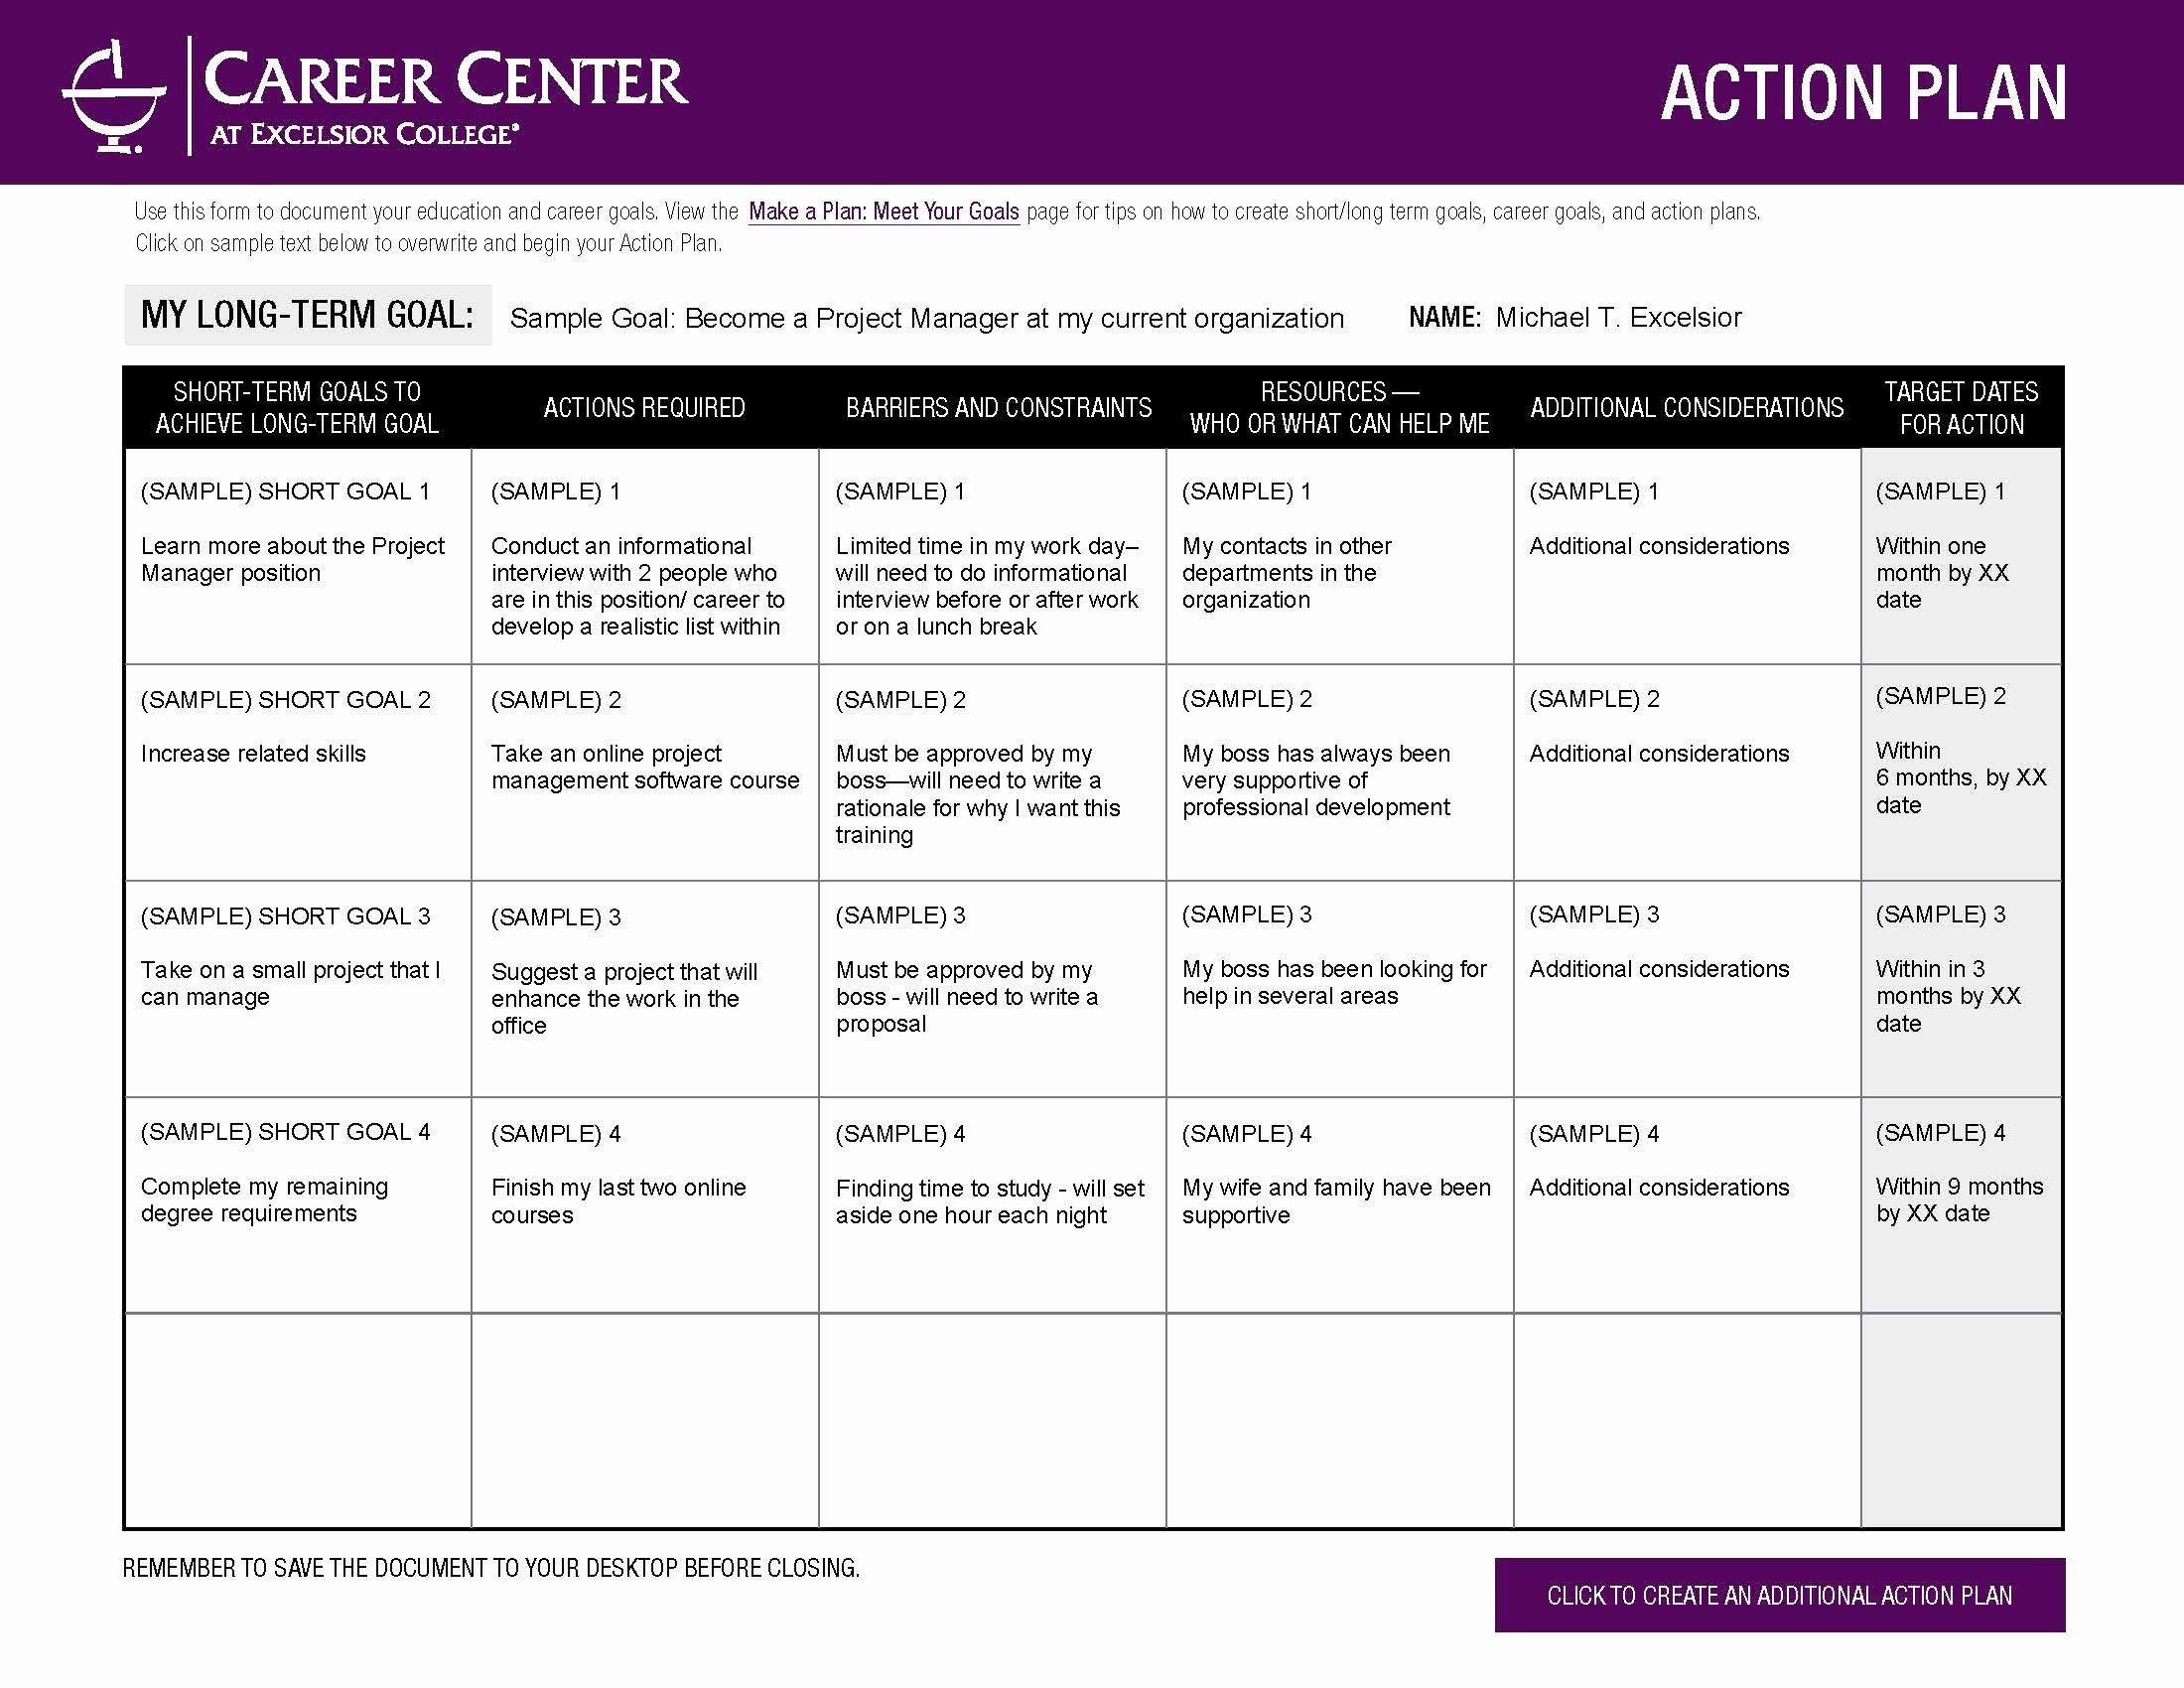 Action Plan Template For Students Beautiful Excelsior College Make A Plan Mee Simple Business Plan Template Marketing Plan Template Business Plan Template Free